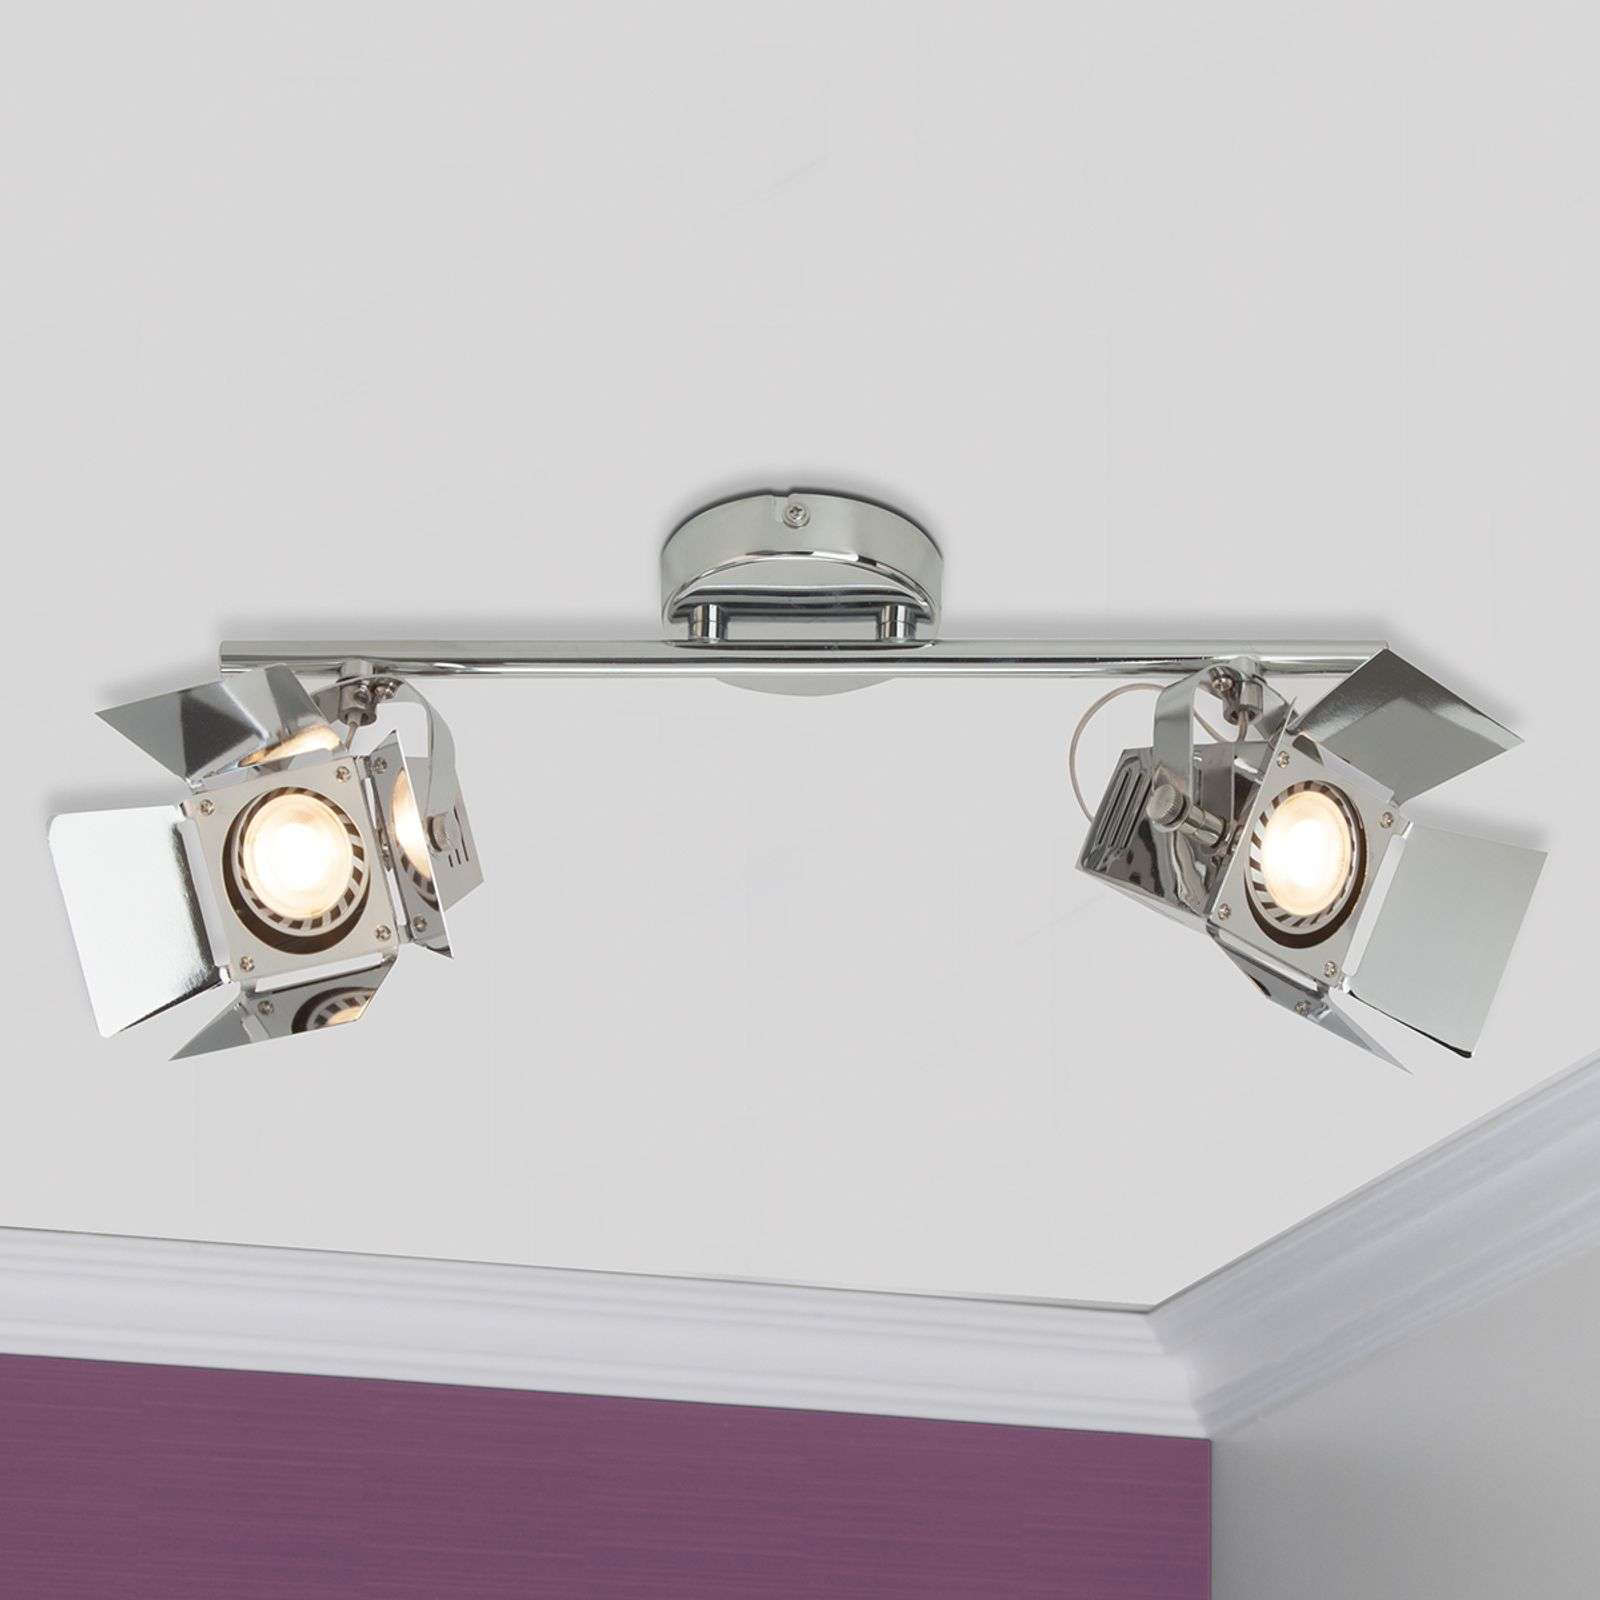 2-lamps LED spot plafondlamp Movie, chroom